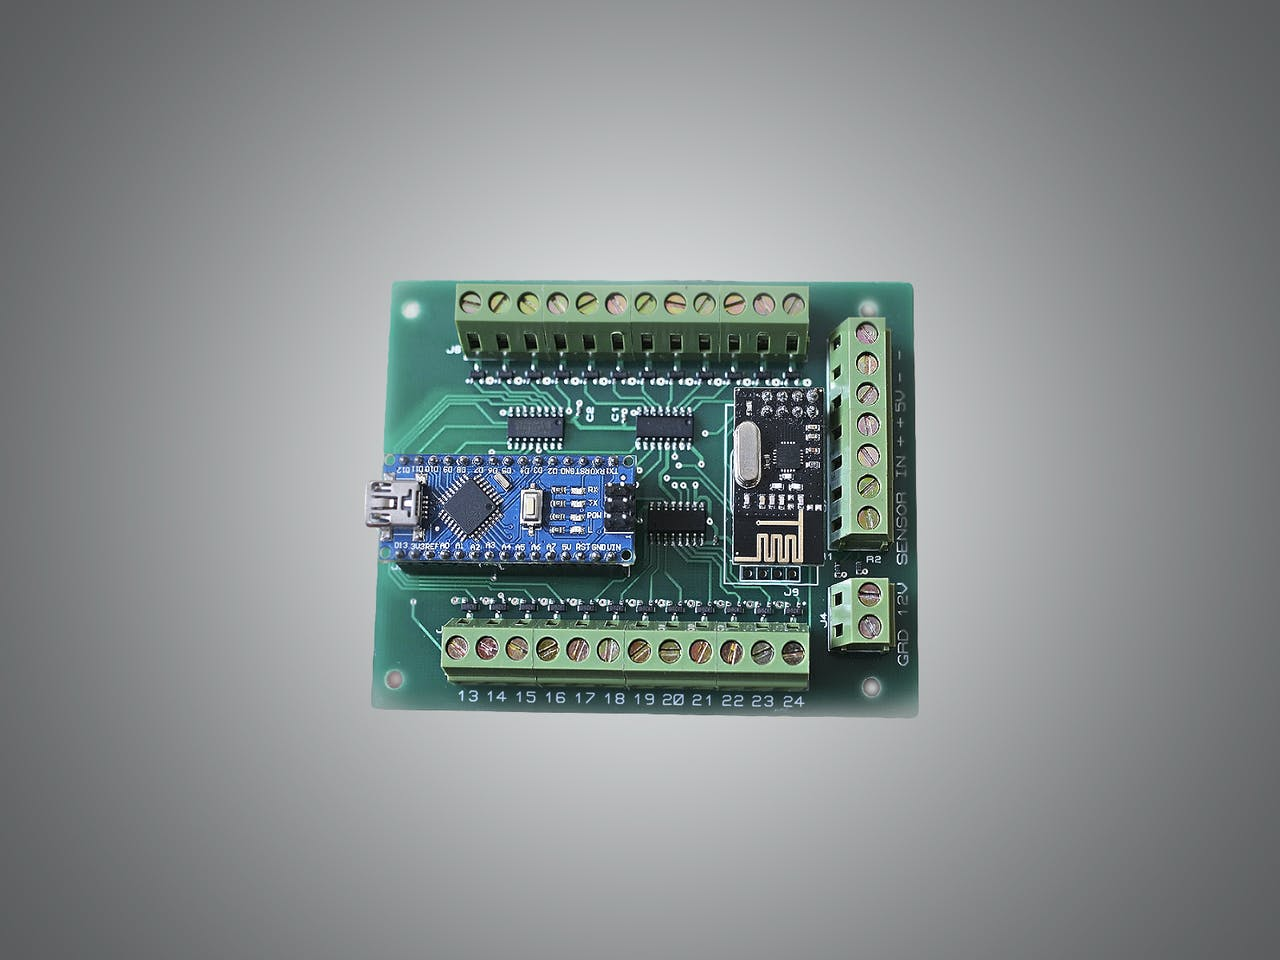 Automatic Led Stairs Lighting Arduino Shield Project Hub Heartbeat Monitor Circuit With And Photocell